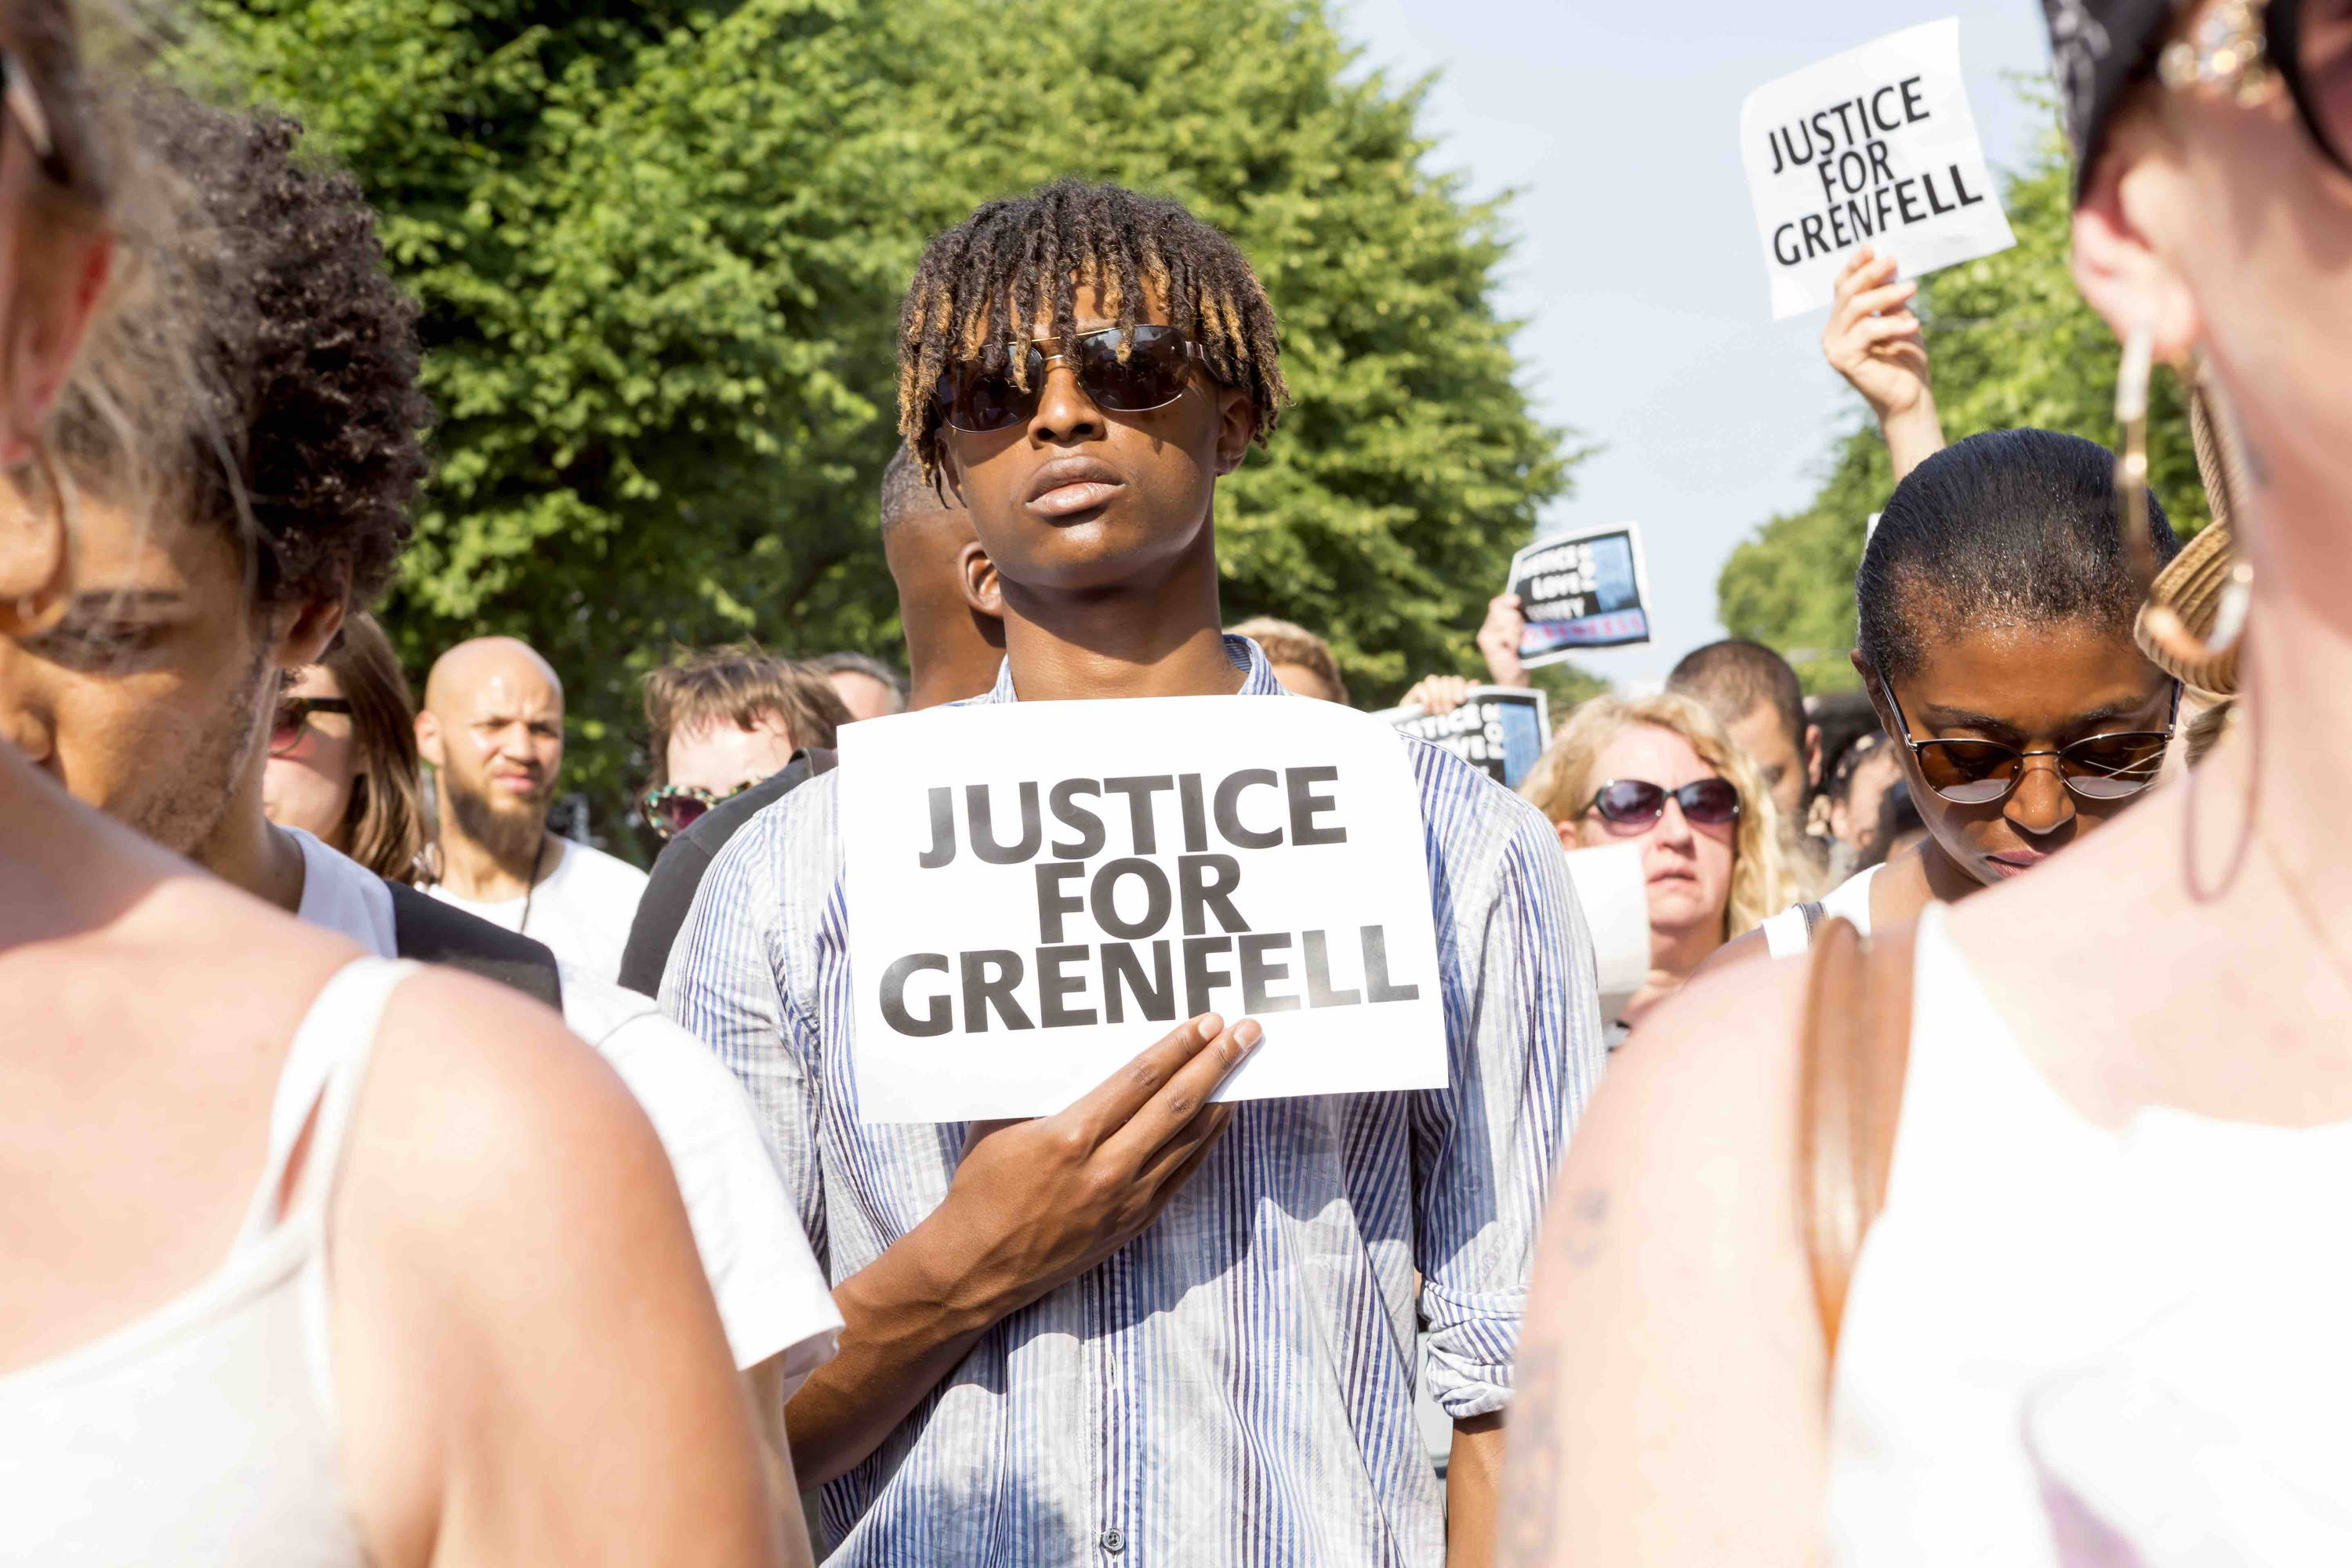 Young man in a crowd holding sign: Justice For Grenfell